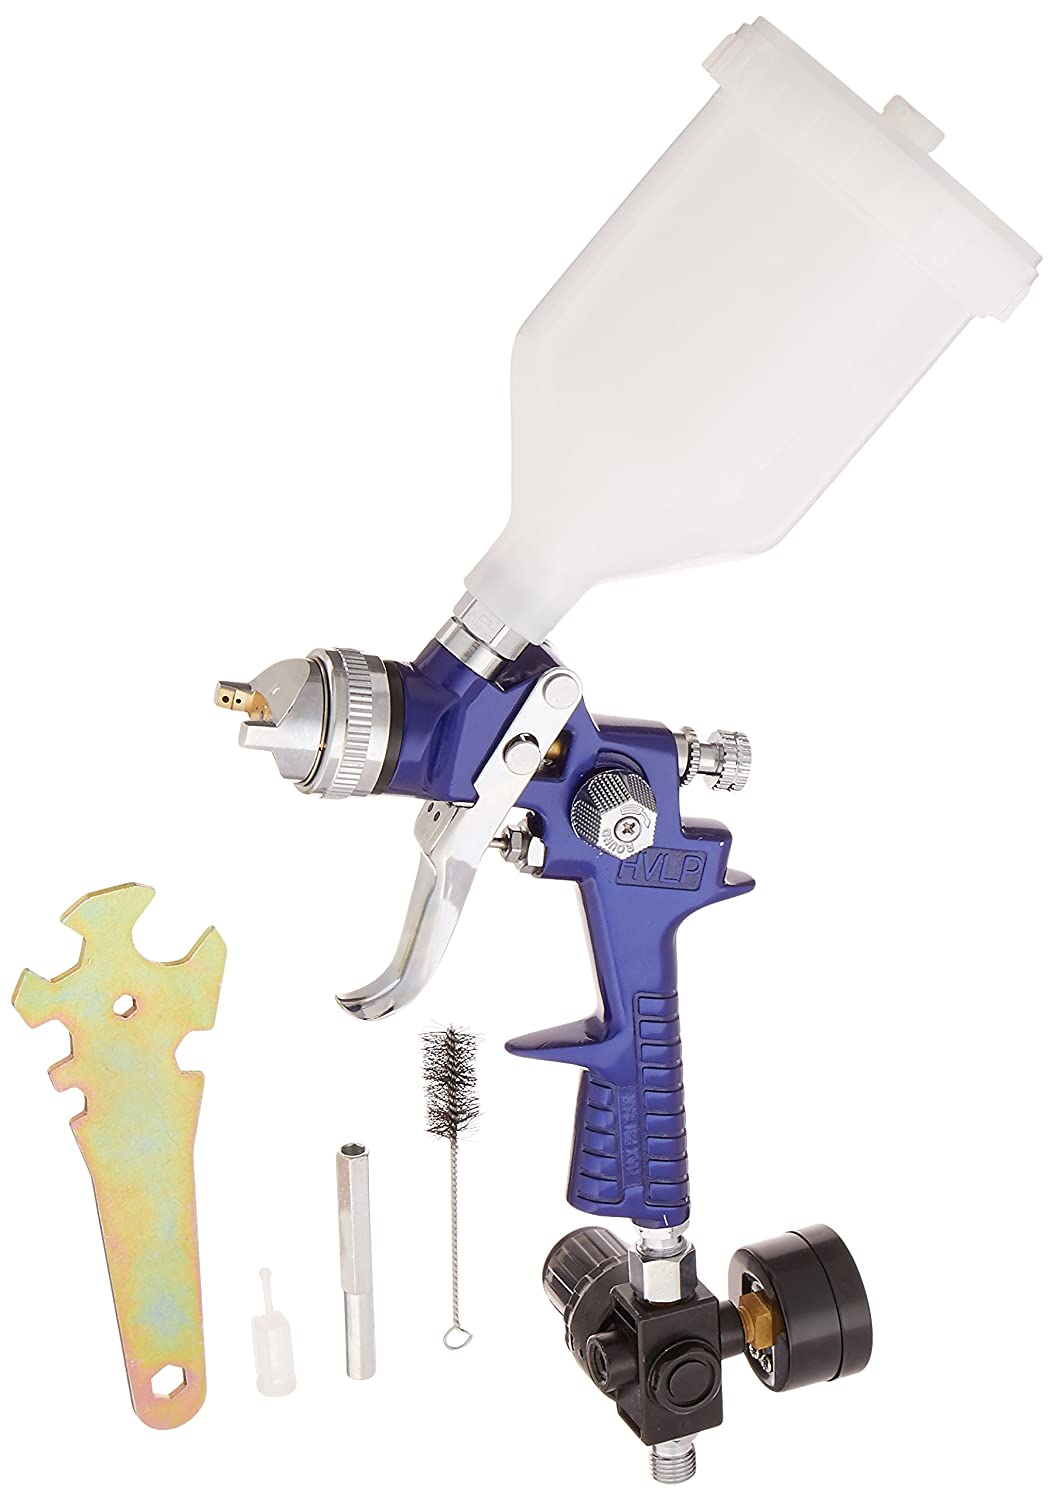 Titan tools vaper™ 4-piece hvlp spray gun comb set.